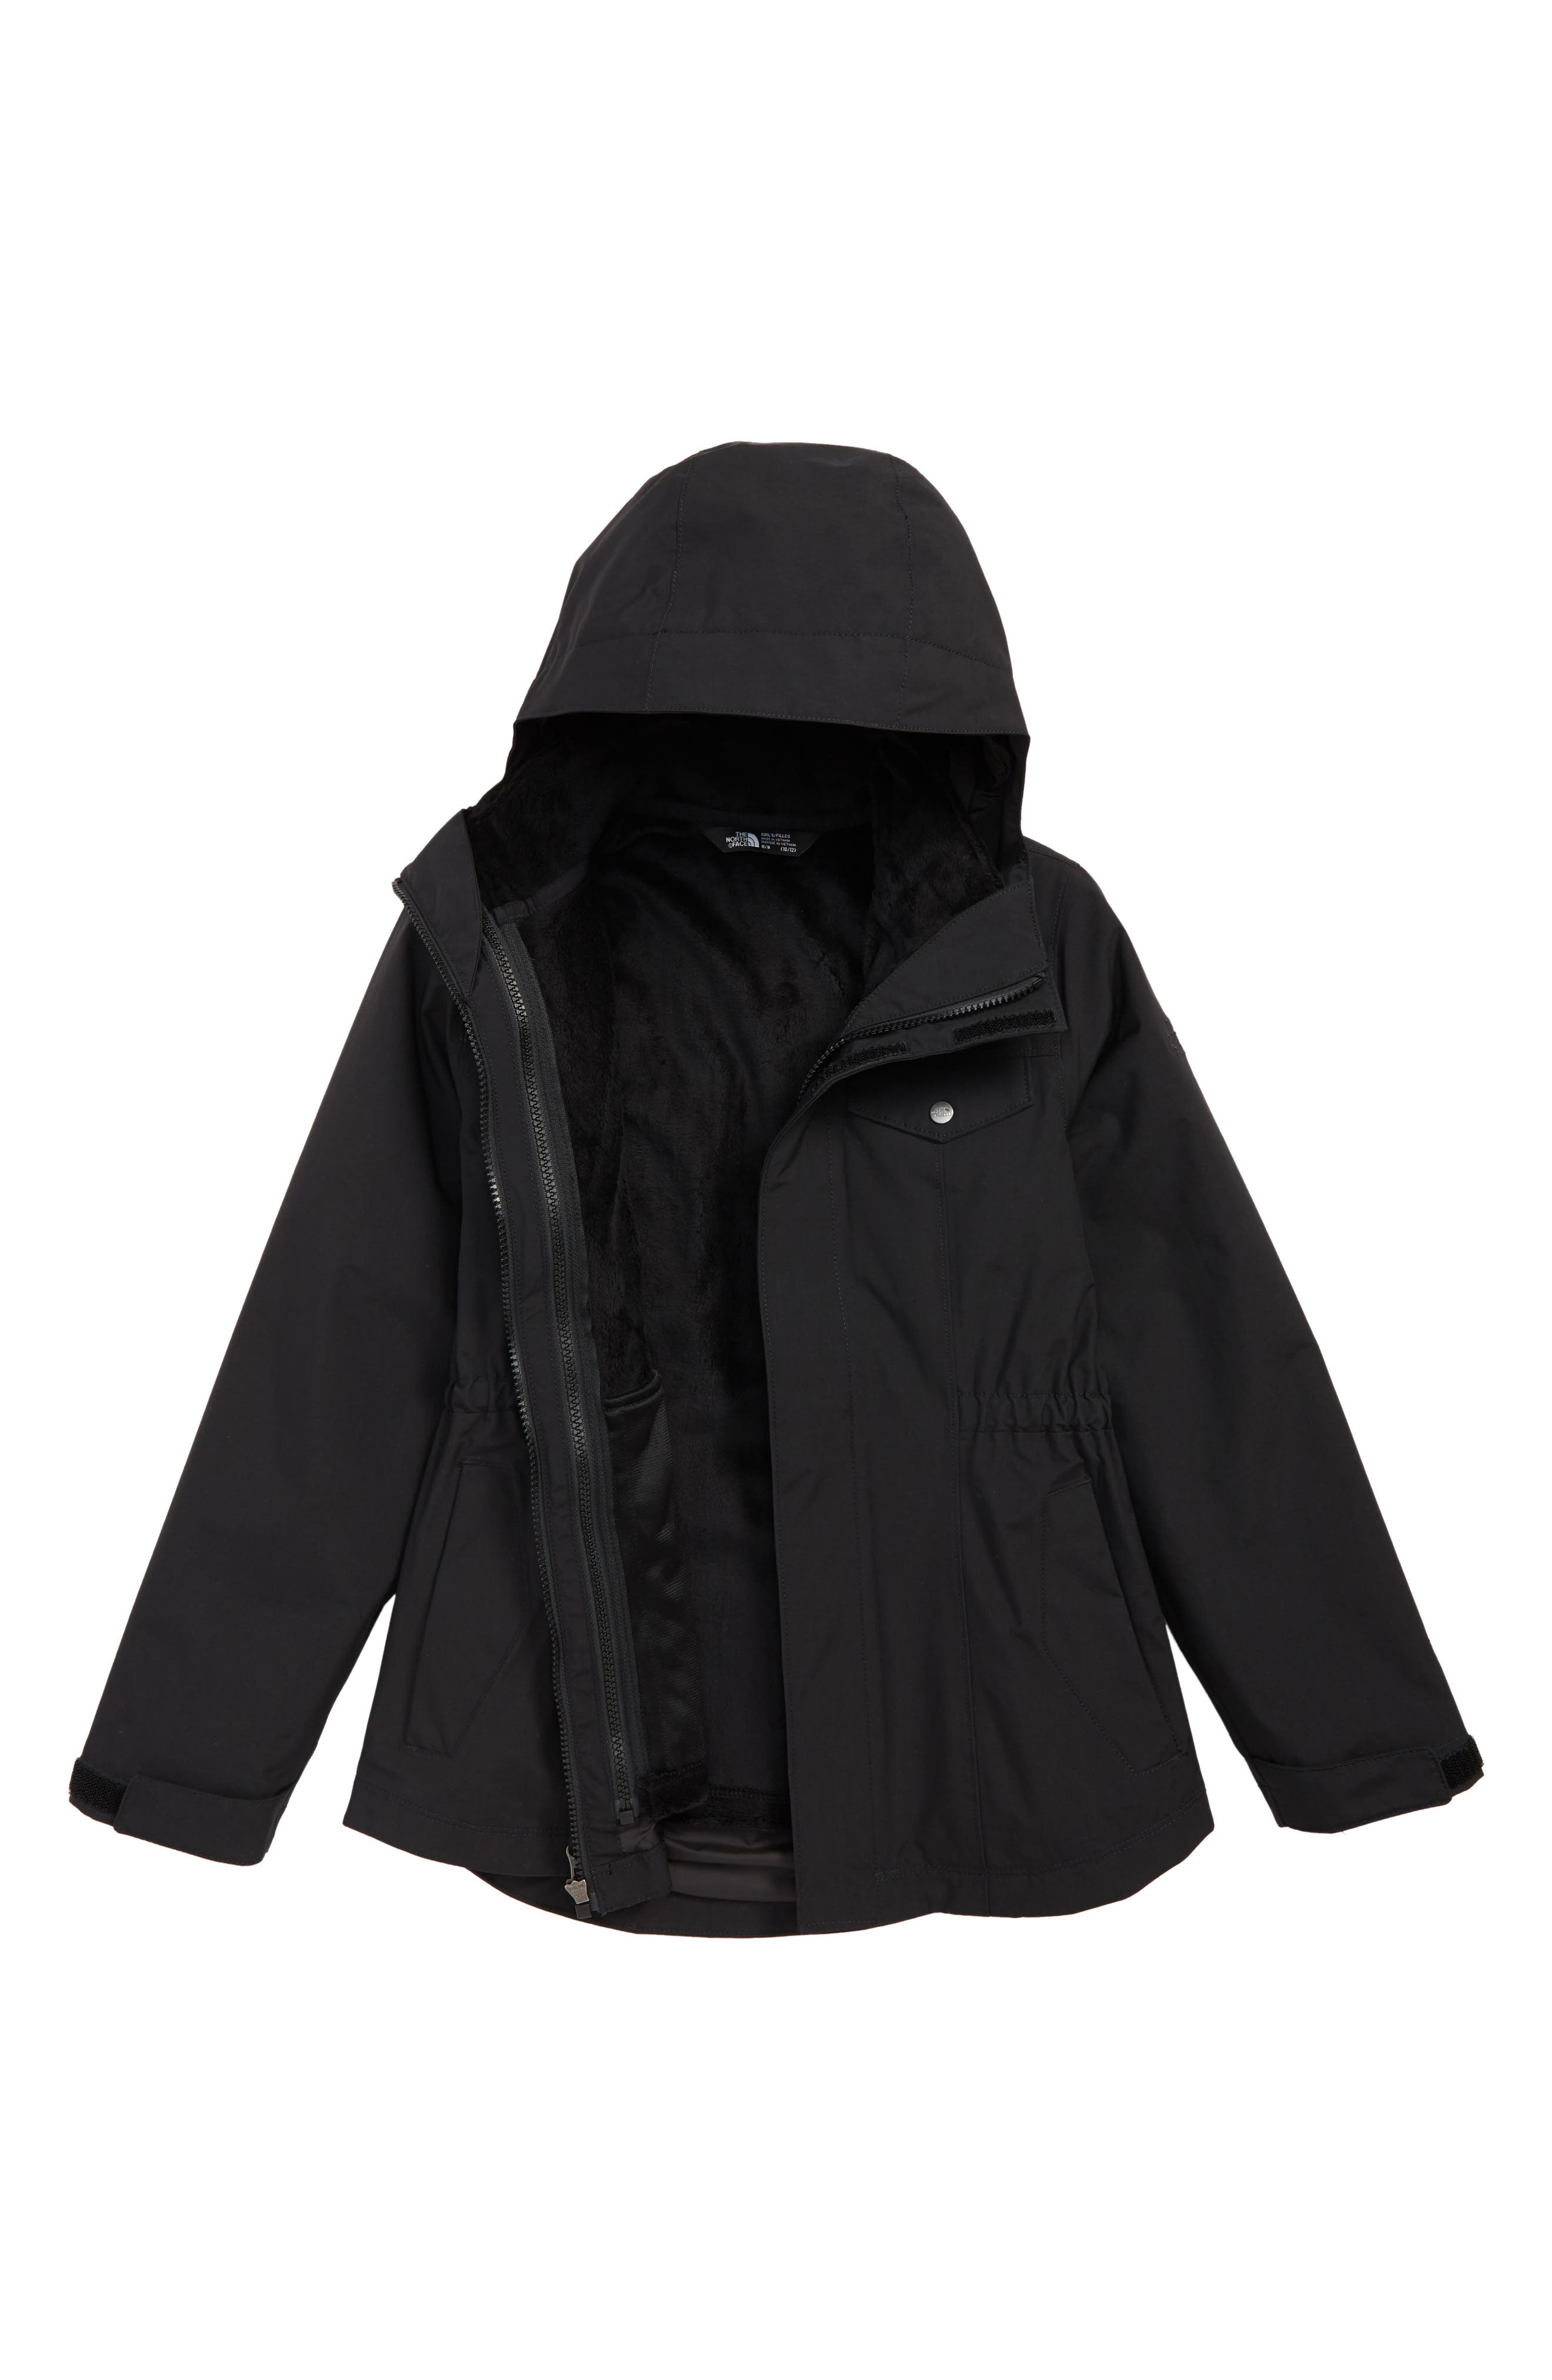 Osolita 2.0 TriClimate<sup>®</sup> Waterproof 3-in-1 Jacket,                             Main thumbnail 1, color,                             TNF BLACK